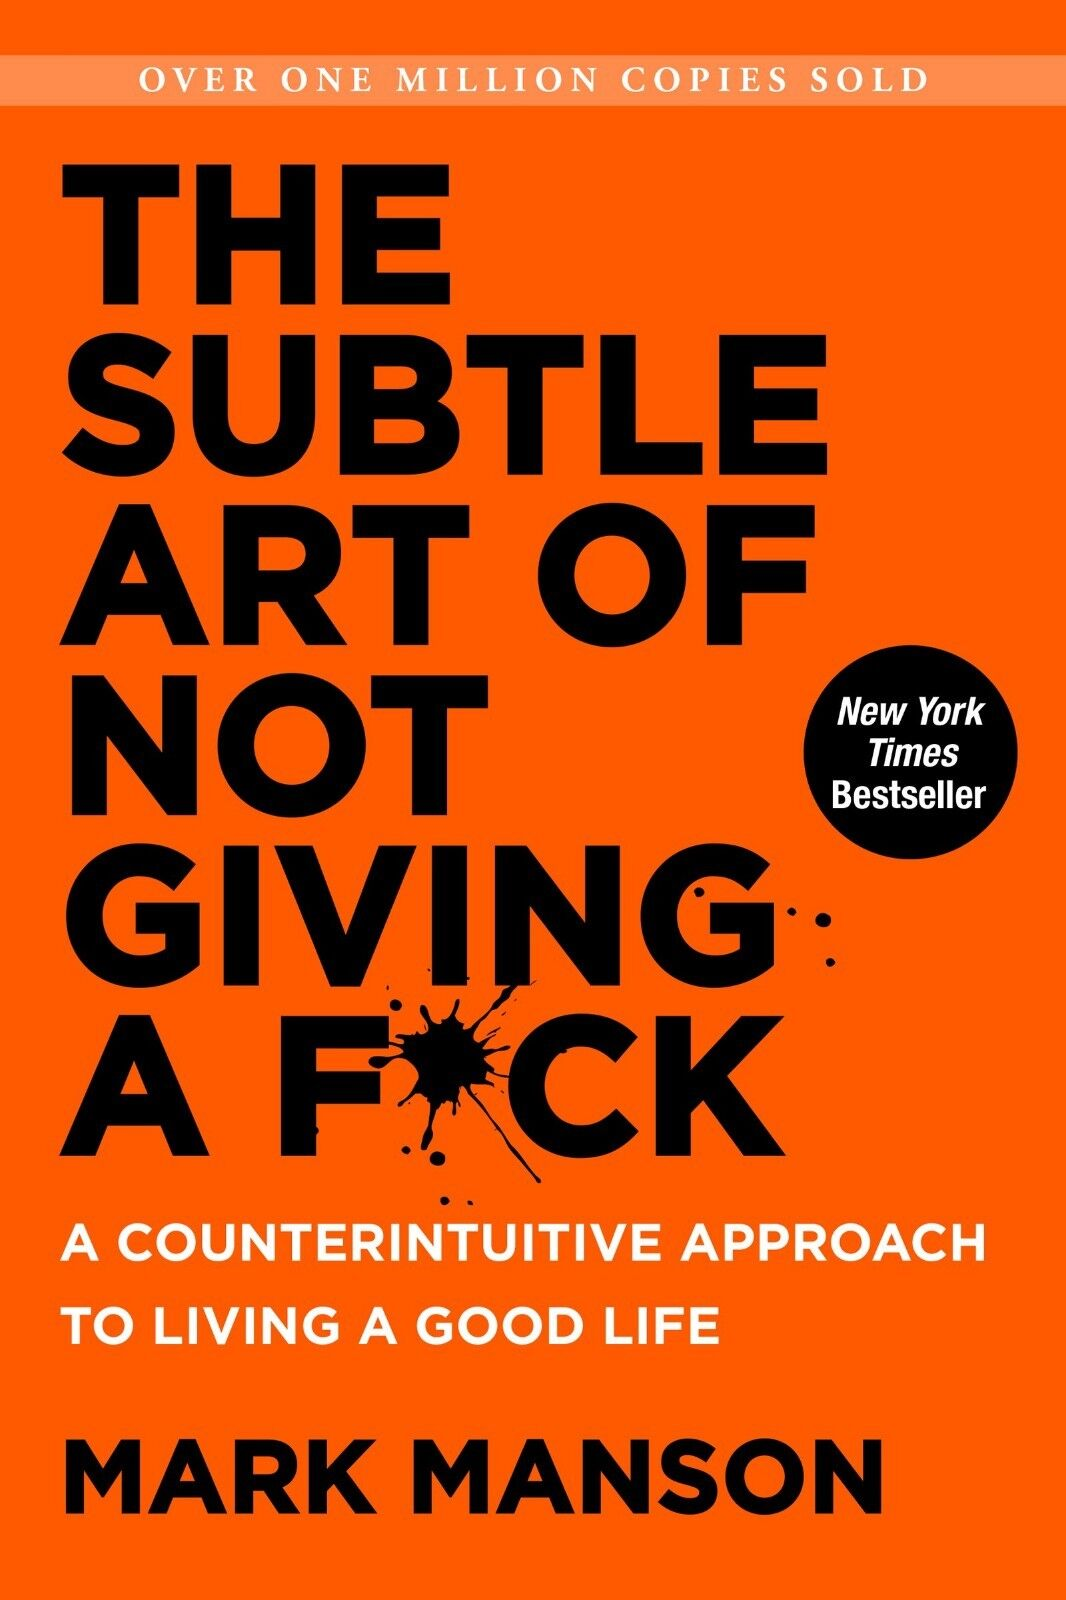 Купить The Subtle Art of Not Giving a F*ck by Mark Manson A Counterintuitive Approach,,